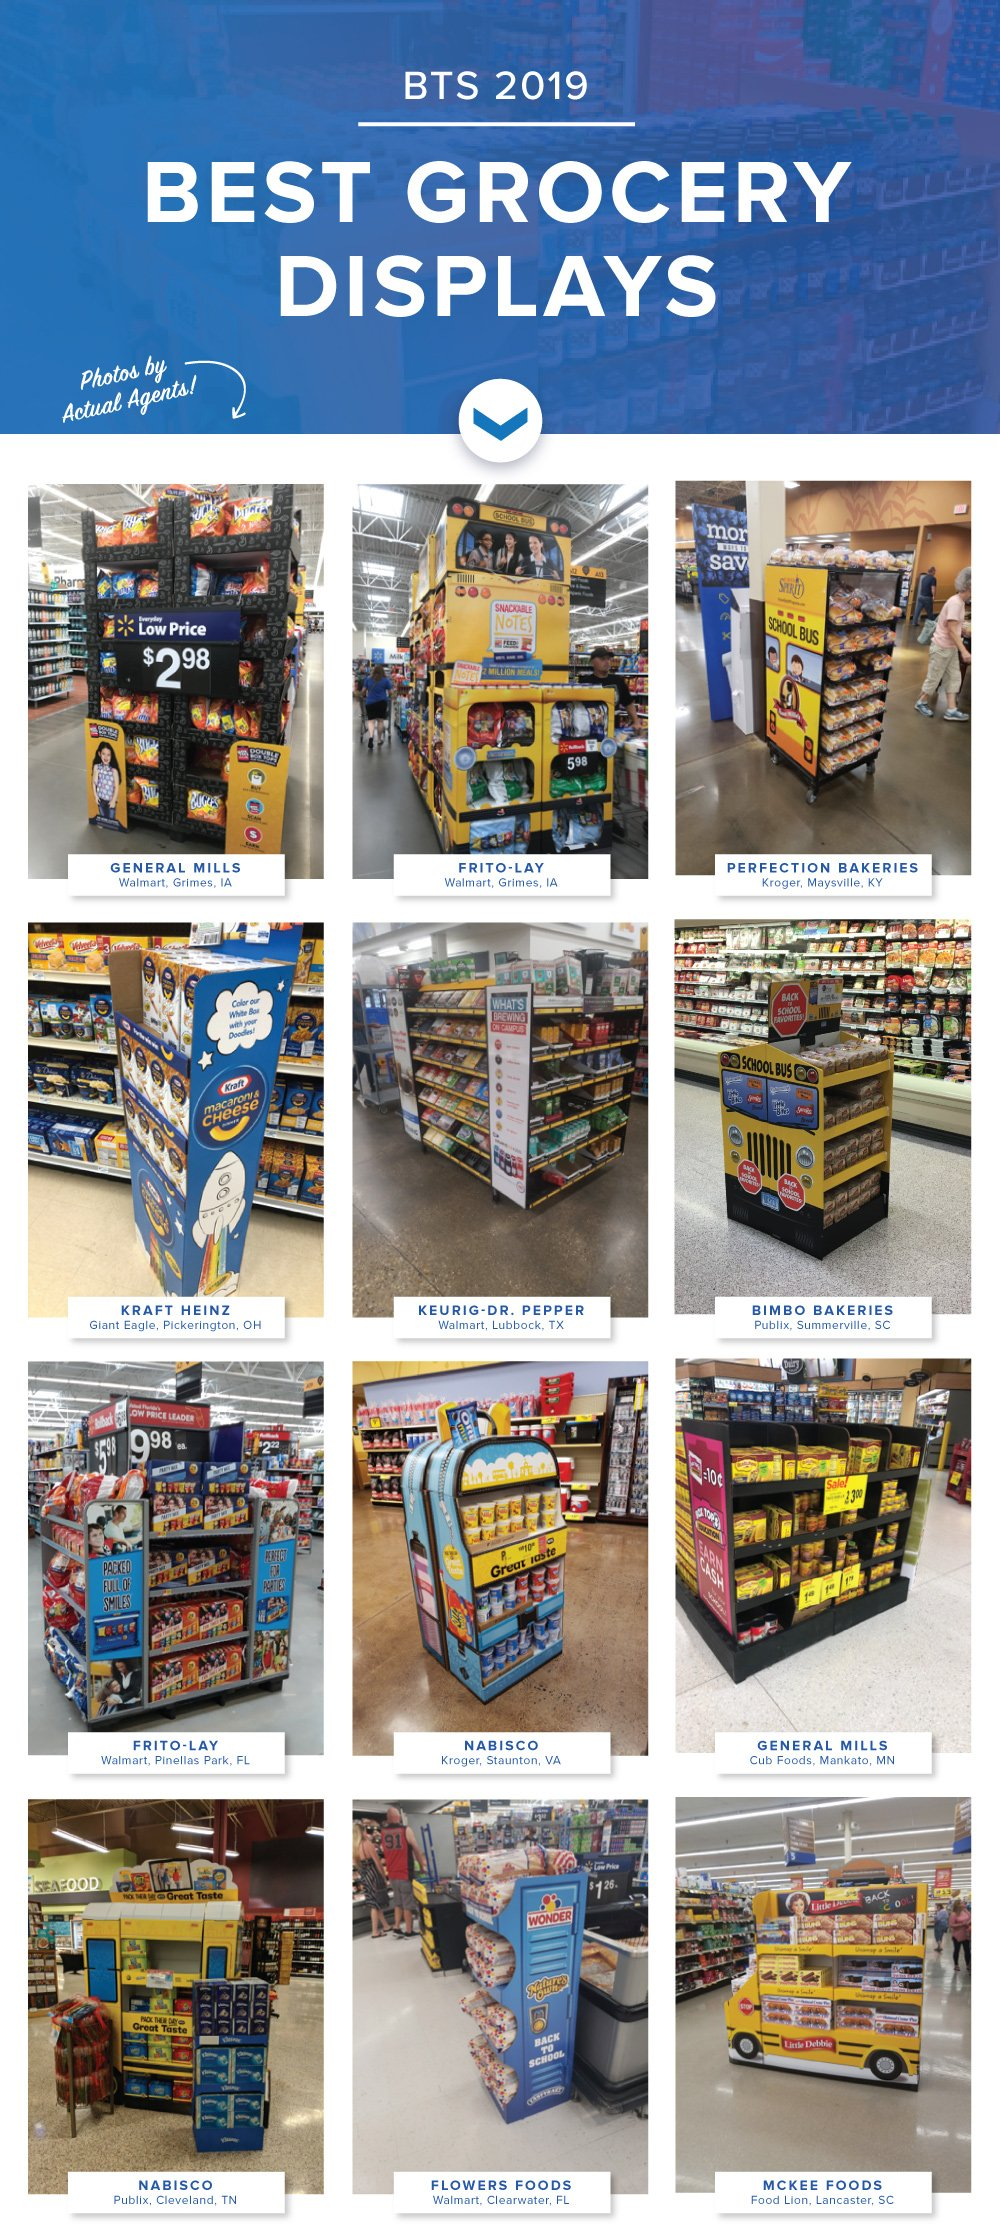 Best-Grocery-Displays-2019-Gallery1